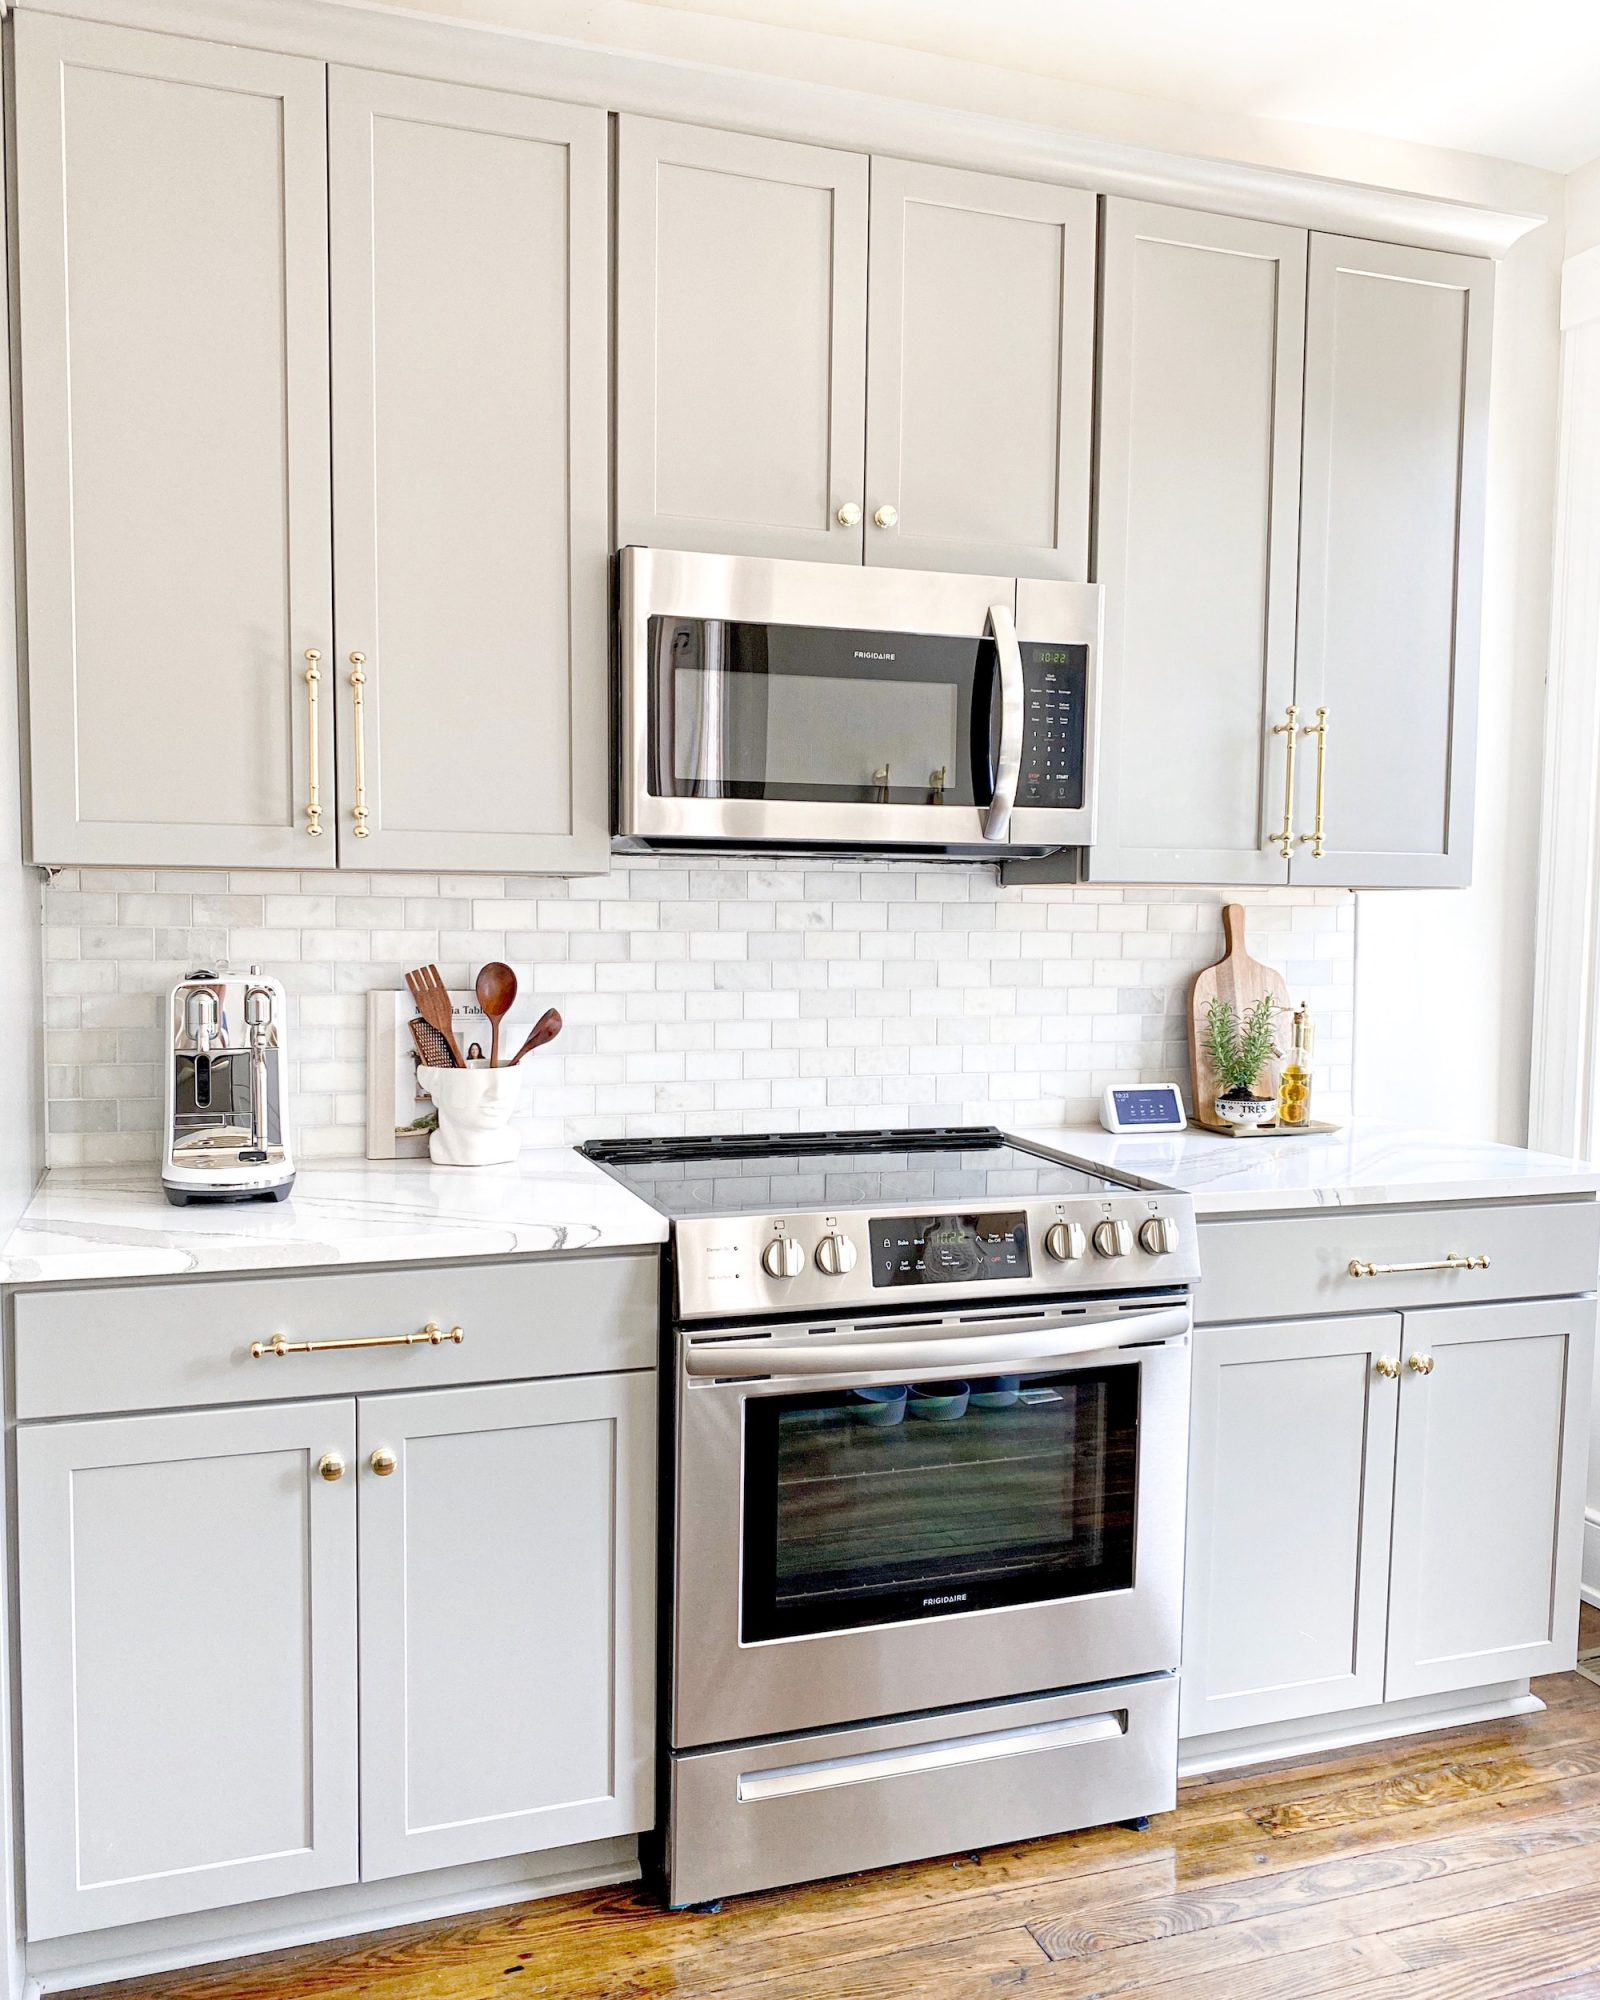 off-white cabinets in kitchen